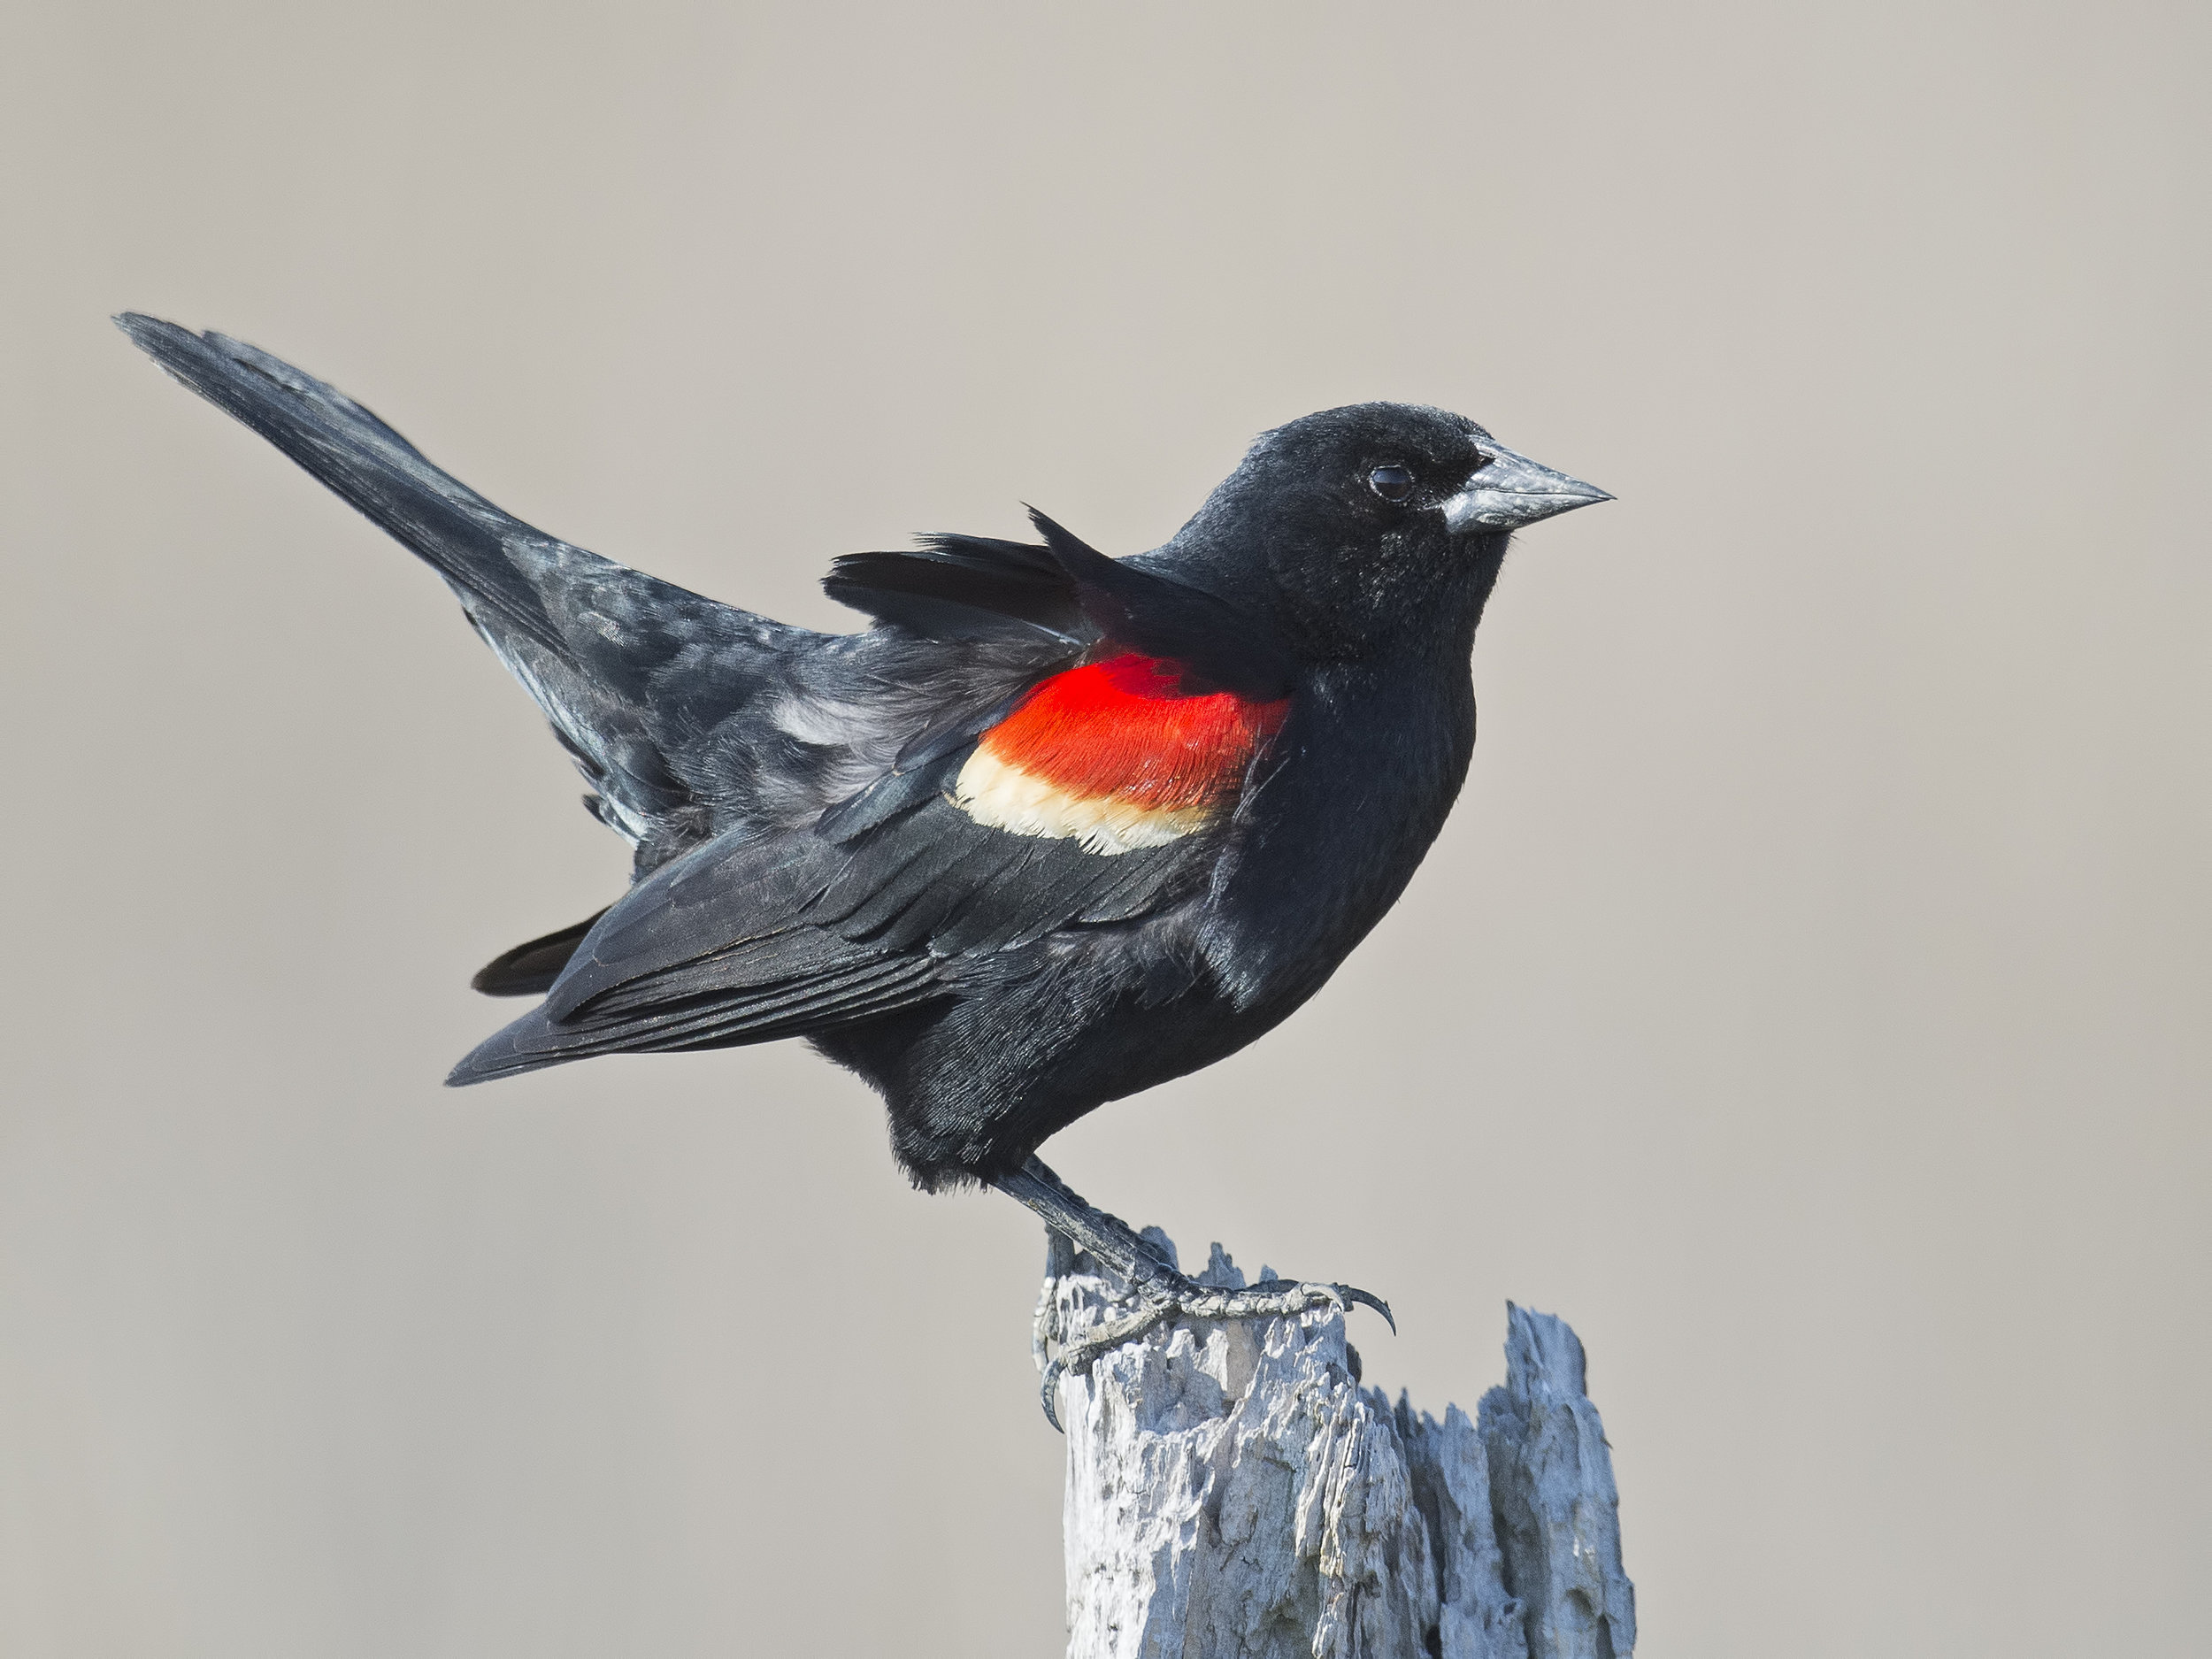 Red-winged blackbird or Agelaius phoeniceus.